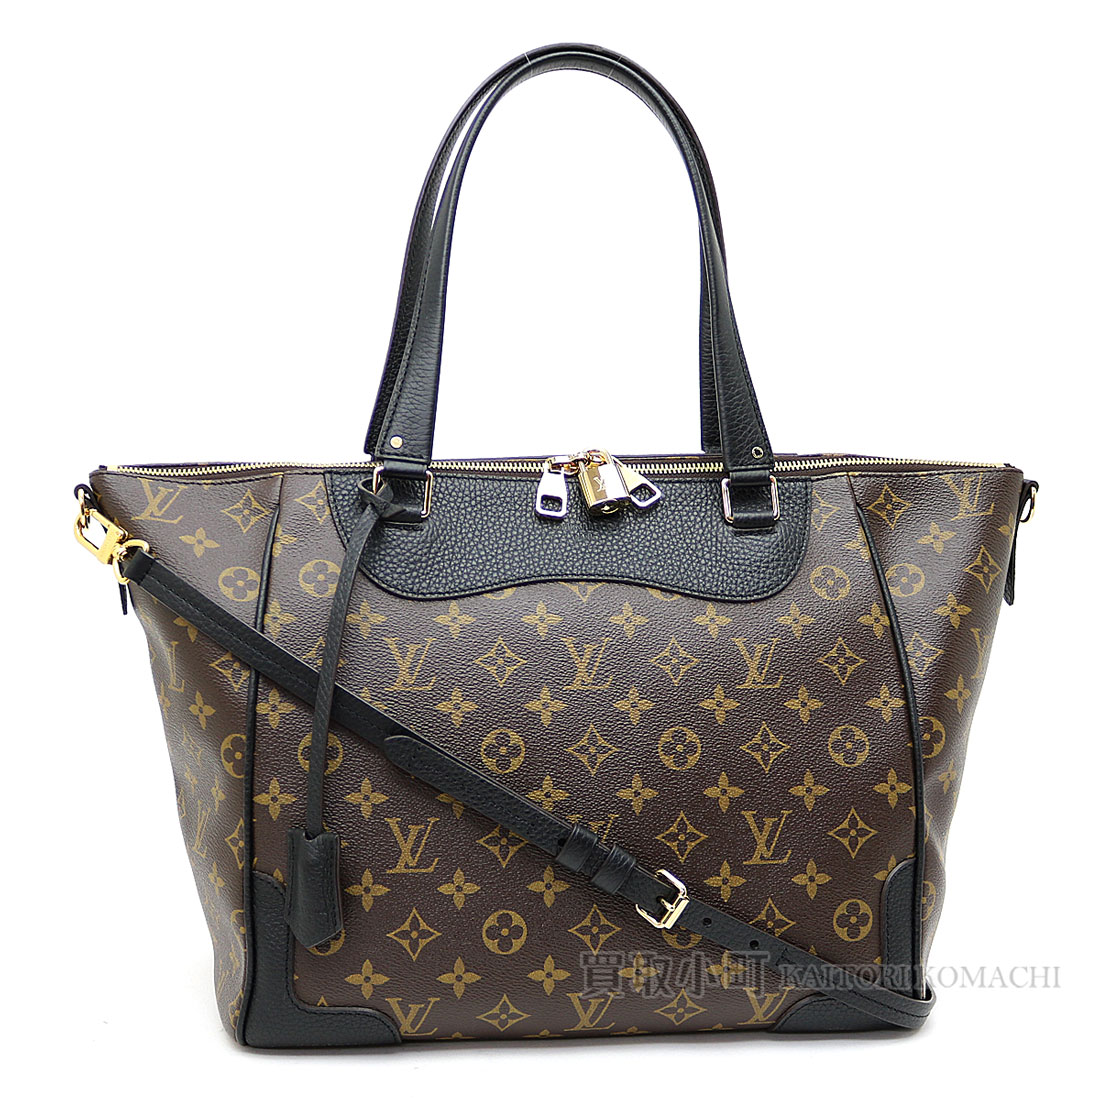 931822bc39f KAITORIKOMACHI: Louis Vuitton M51192 エストレーラモノグラムキュイールノワール 2WAY shoulder bag  handbag city tote bag black LV ESTRELA MONOGRAM NOIR ...